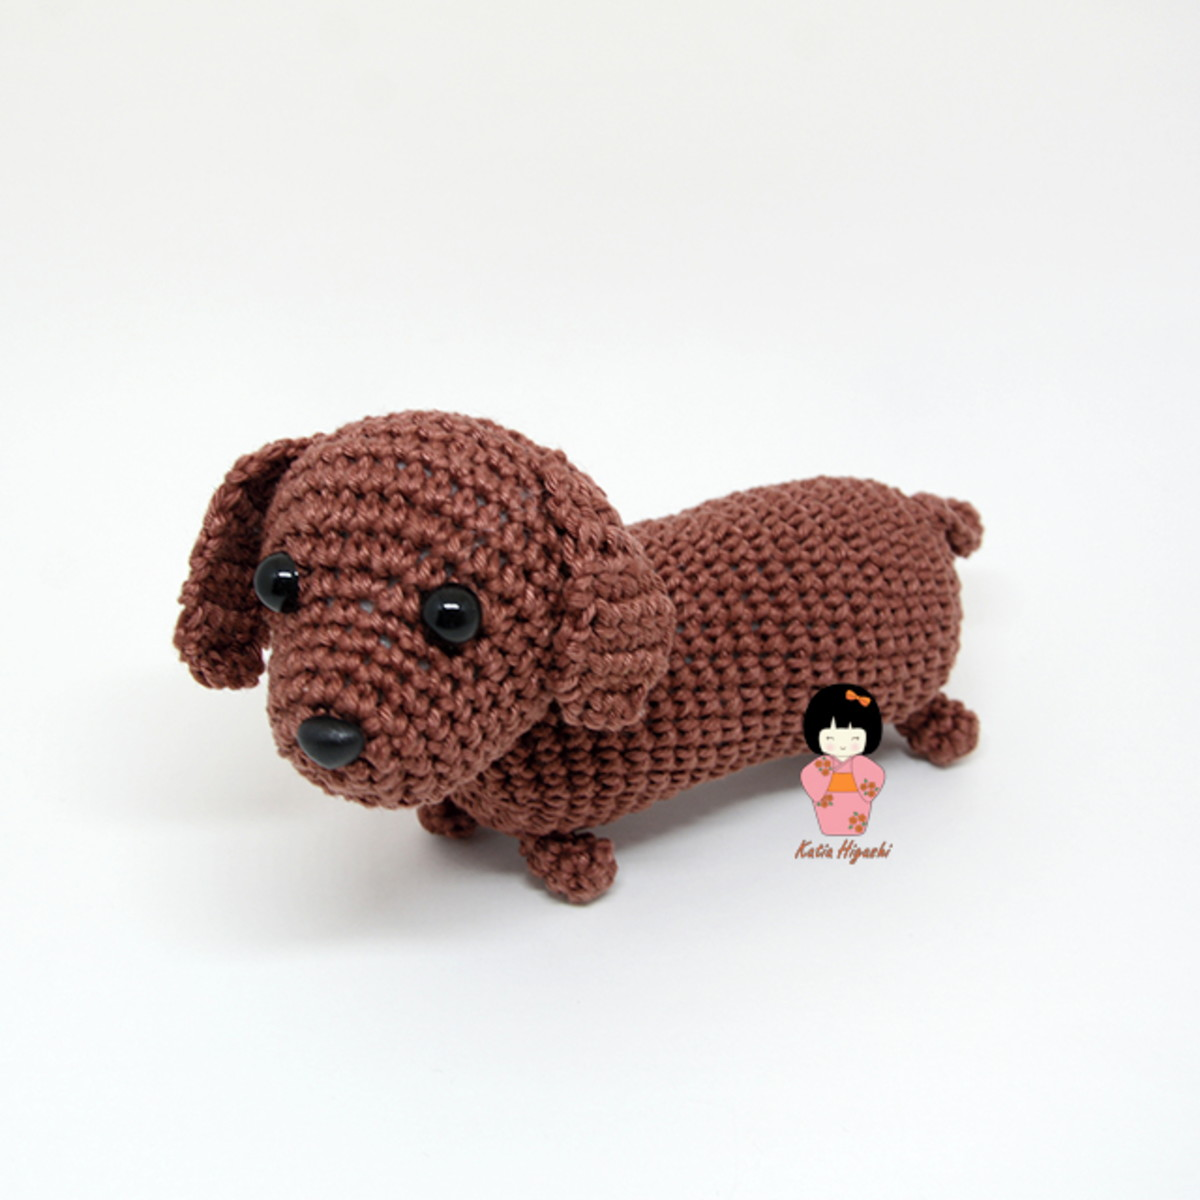 Crochet Cute Amigurumi Dachshund Dog Part 1 of 2 DIY Video ... | 1200x1200